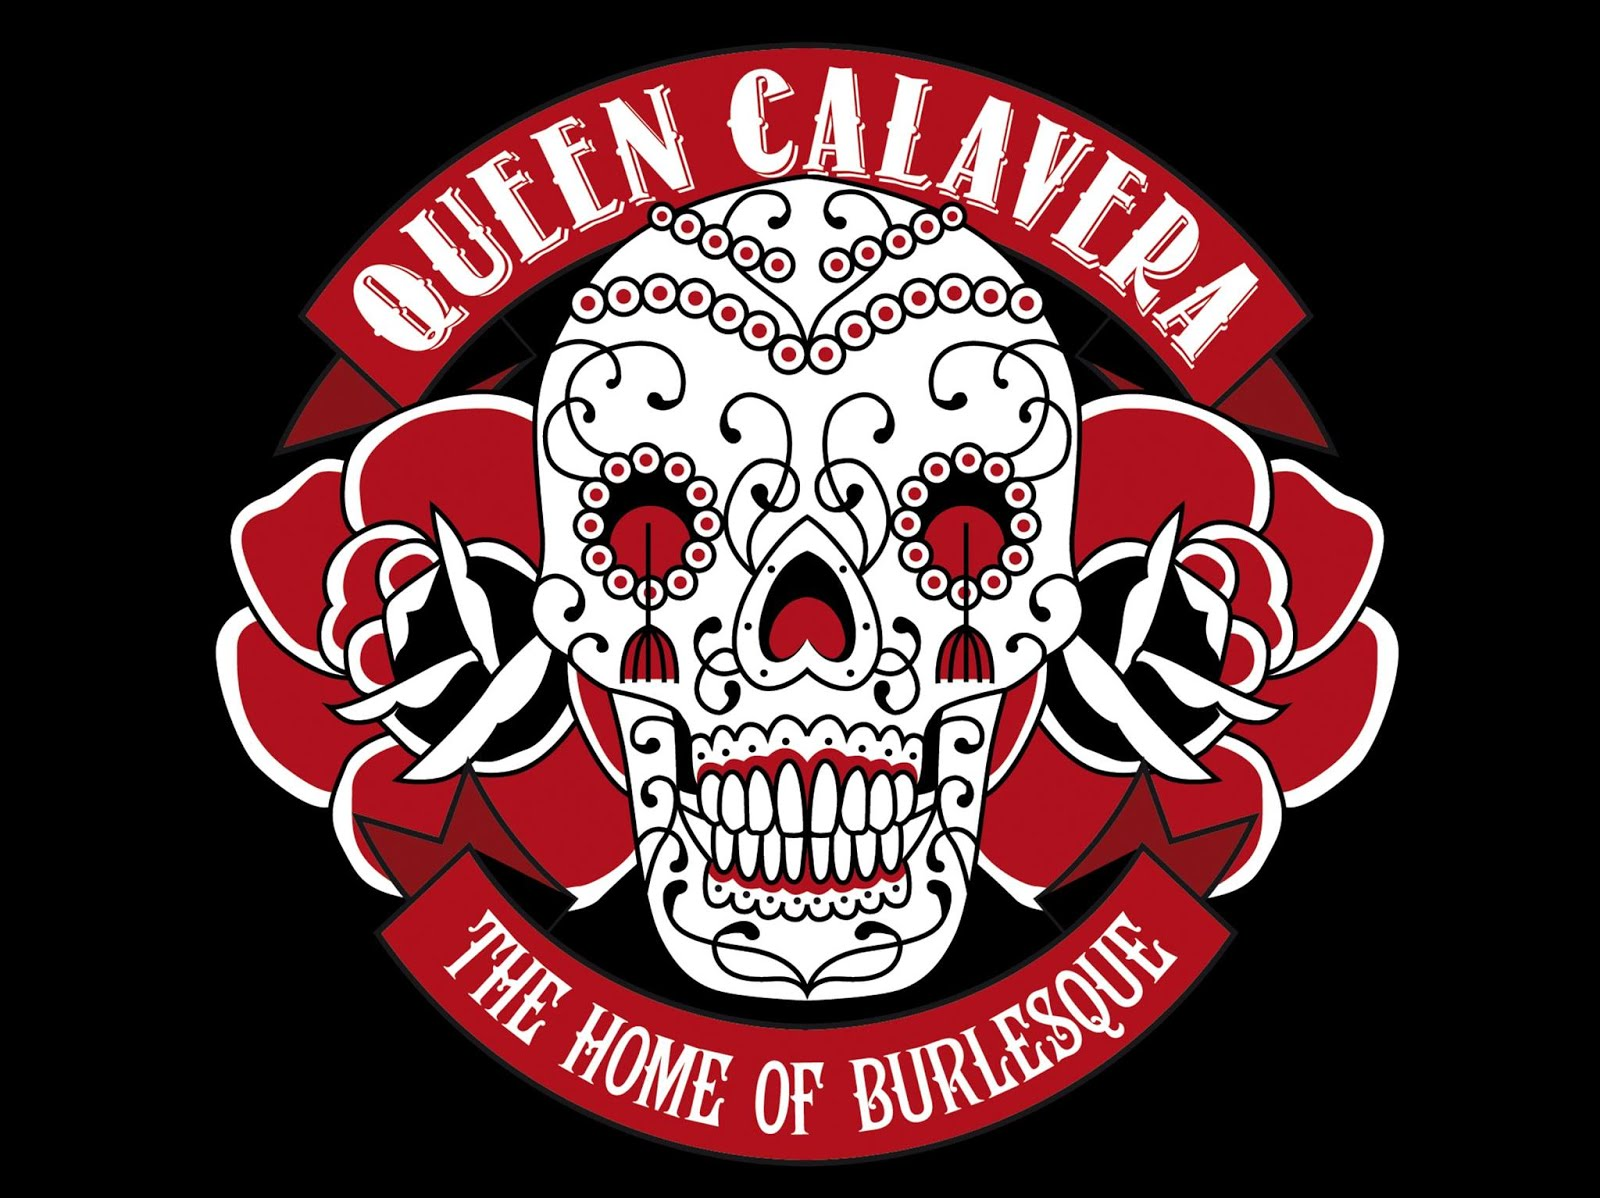 Queen Calavera